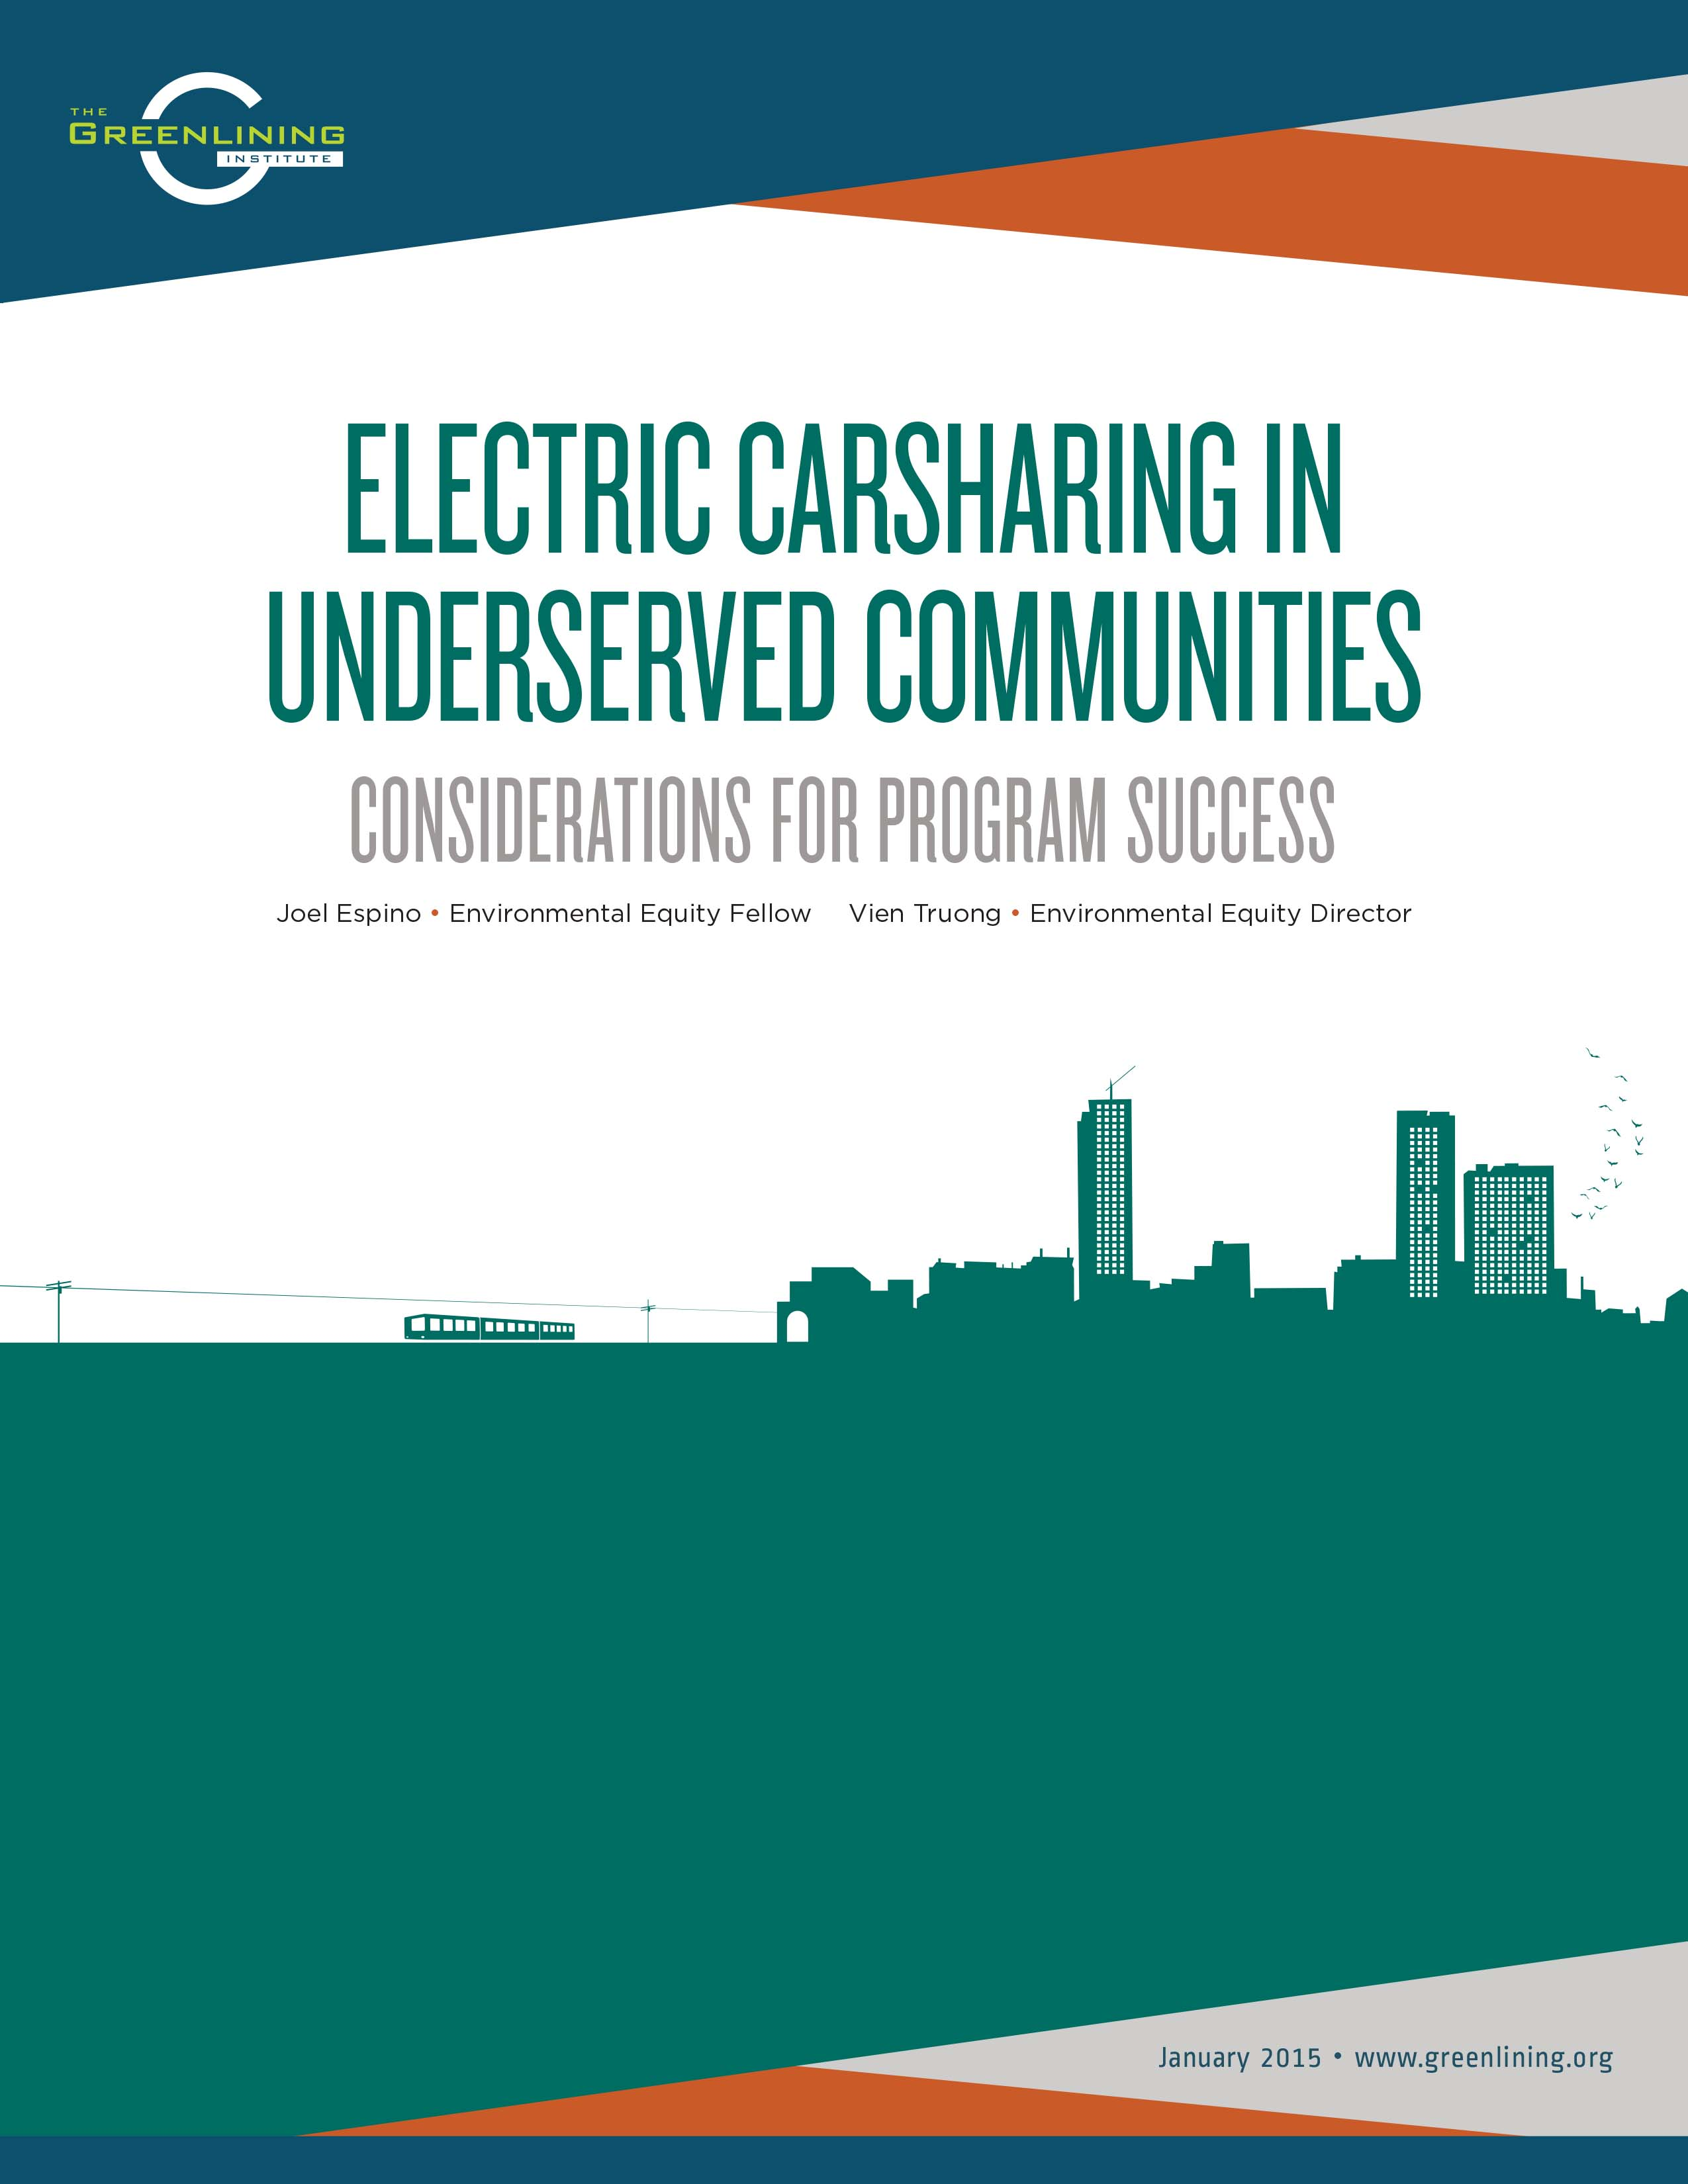 Electric Carsharing in Underserved Communities